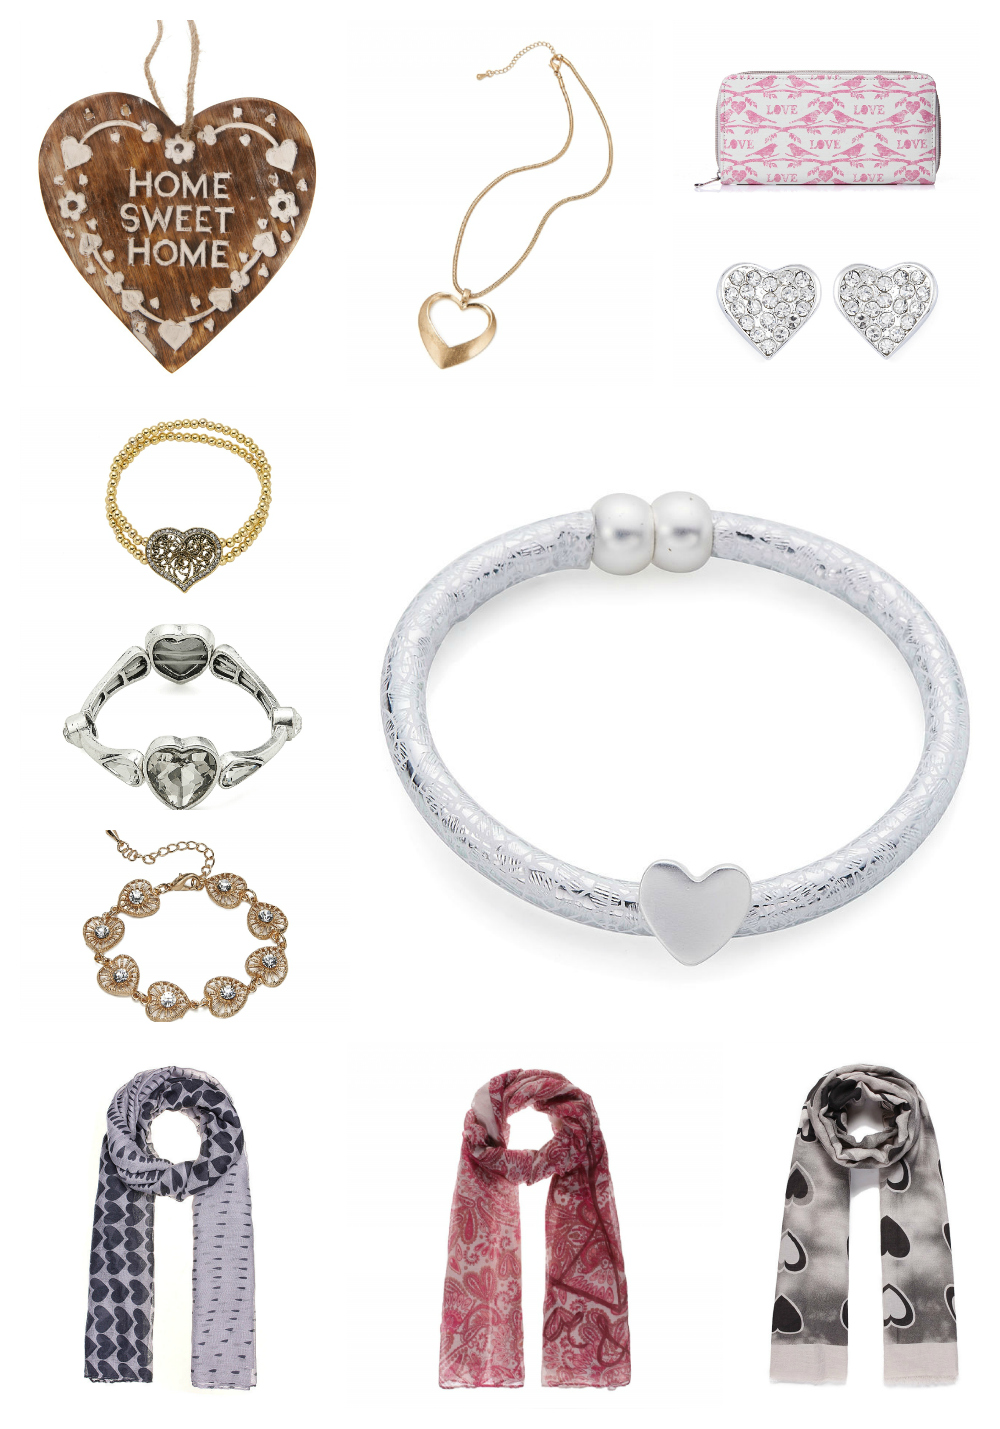 lylia rose valentines heart themed fashion accessories jewellery & gift